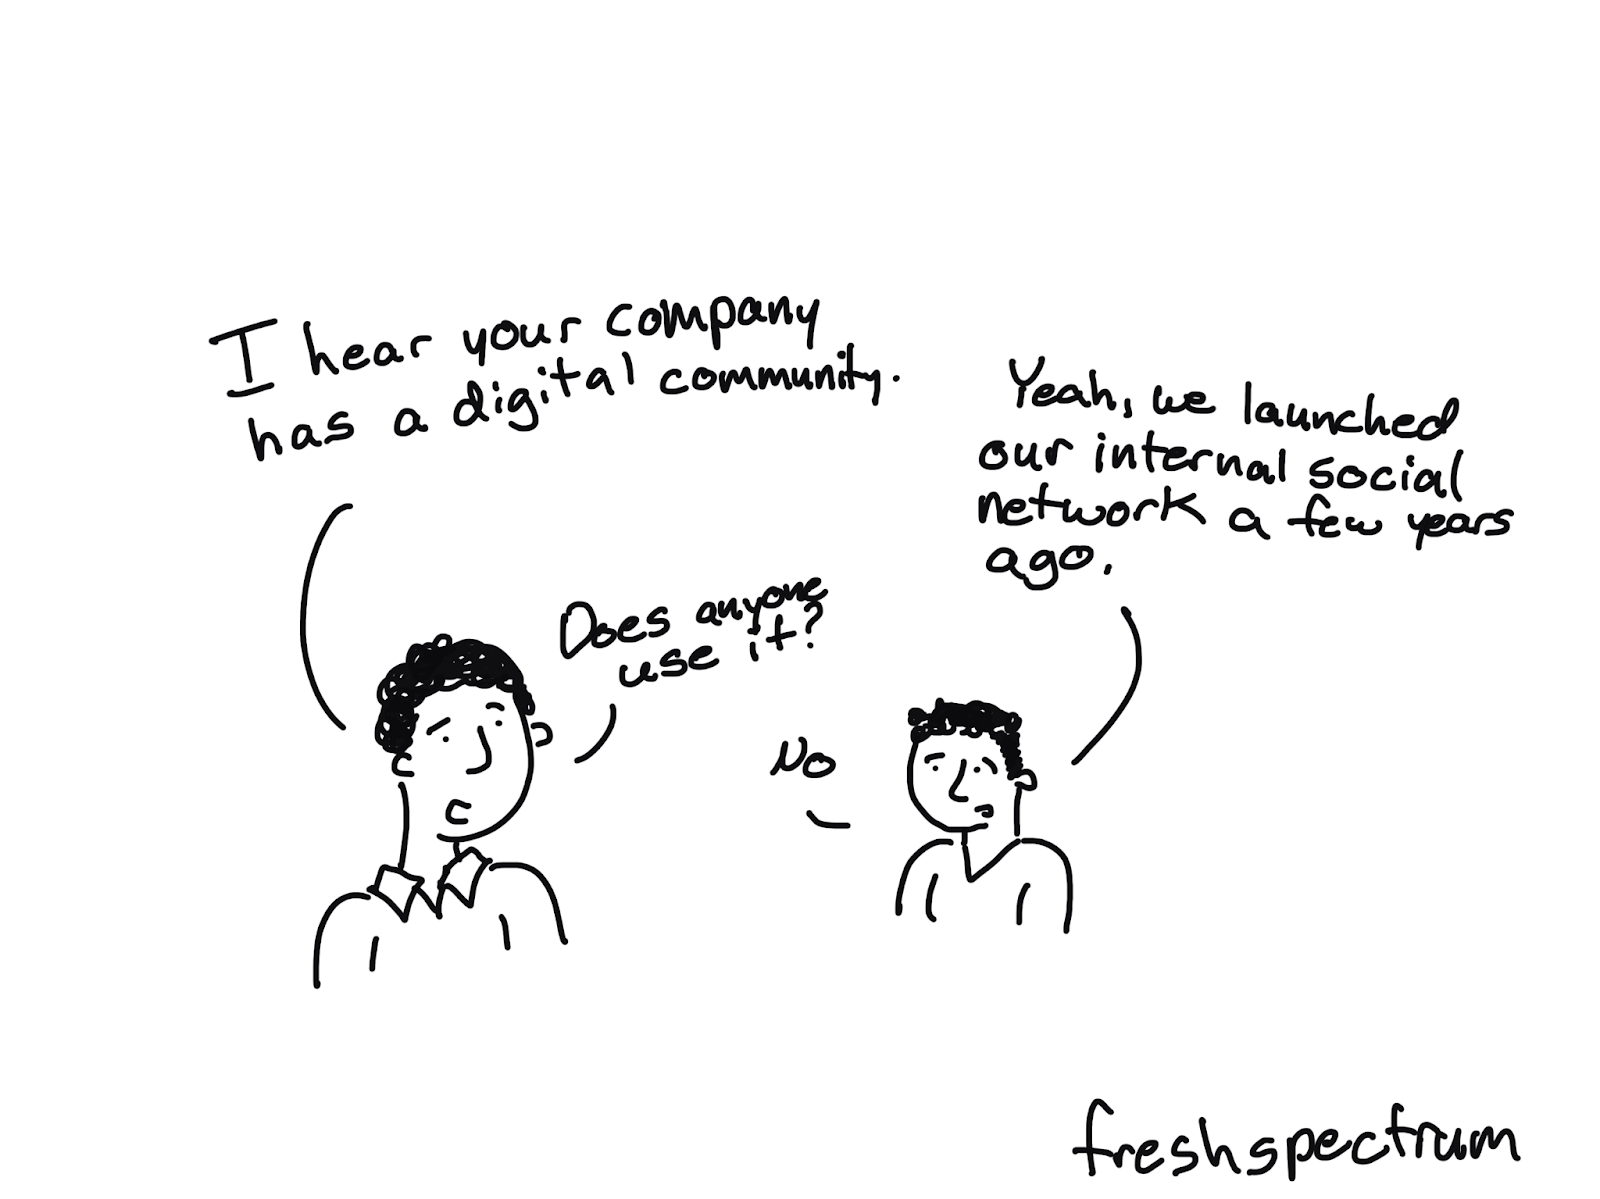 """Cartoon illustration of two people where one is saying """"I hear your company has a digital community"""" and the other is saying :Yeah, we launched out internal social network a few years ago."""" The first person asks """"Does anyone use it?"""" and the second responds """"no."""""""